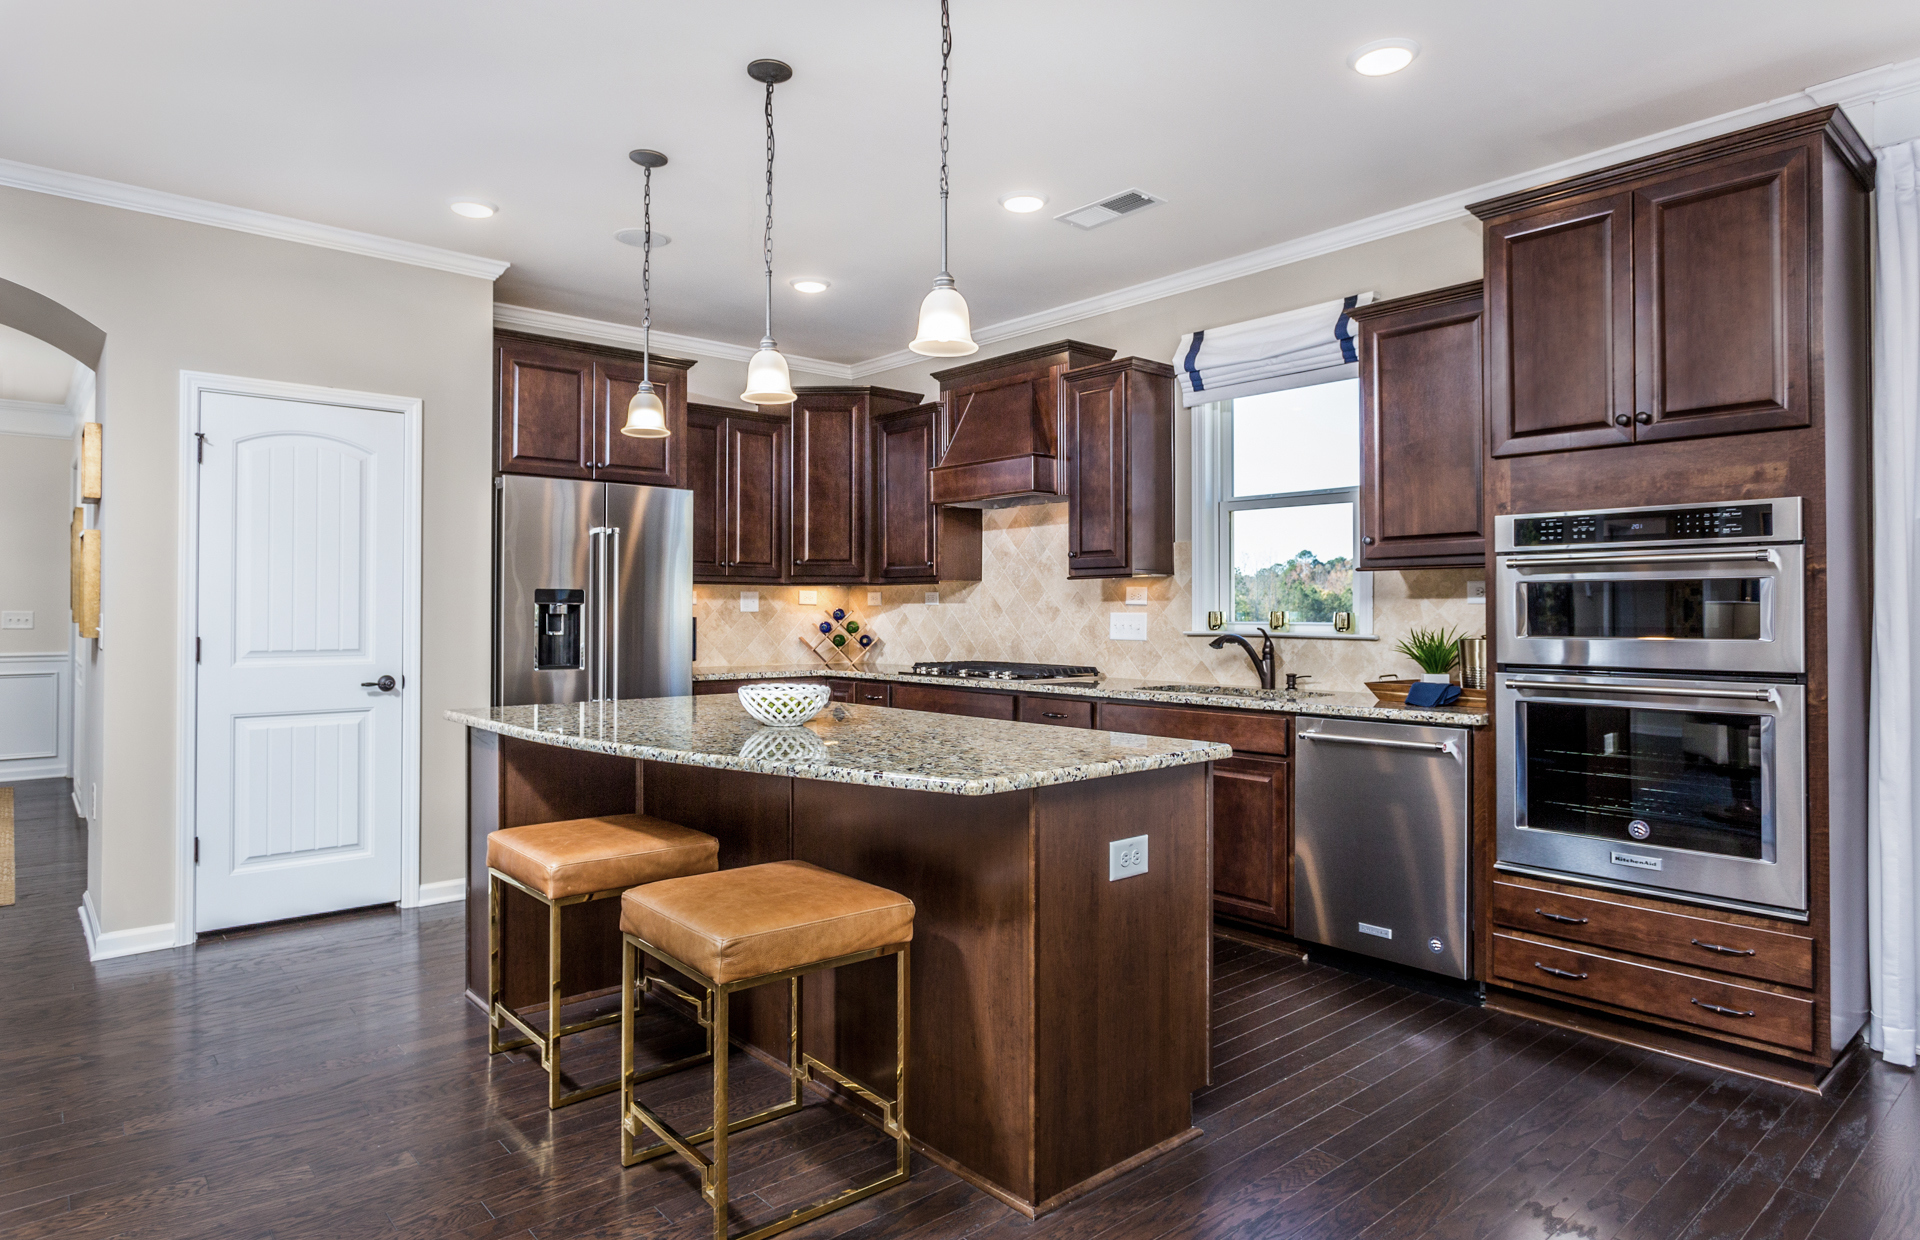 NC-Traditions-Abbeyville-kitchen3.jpg